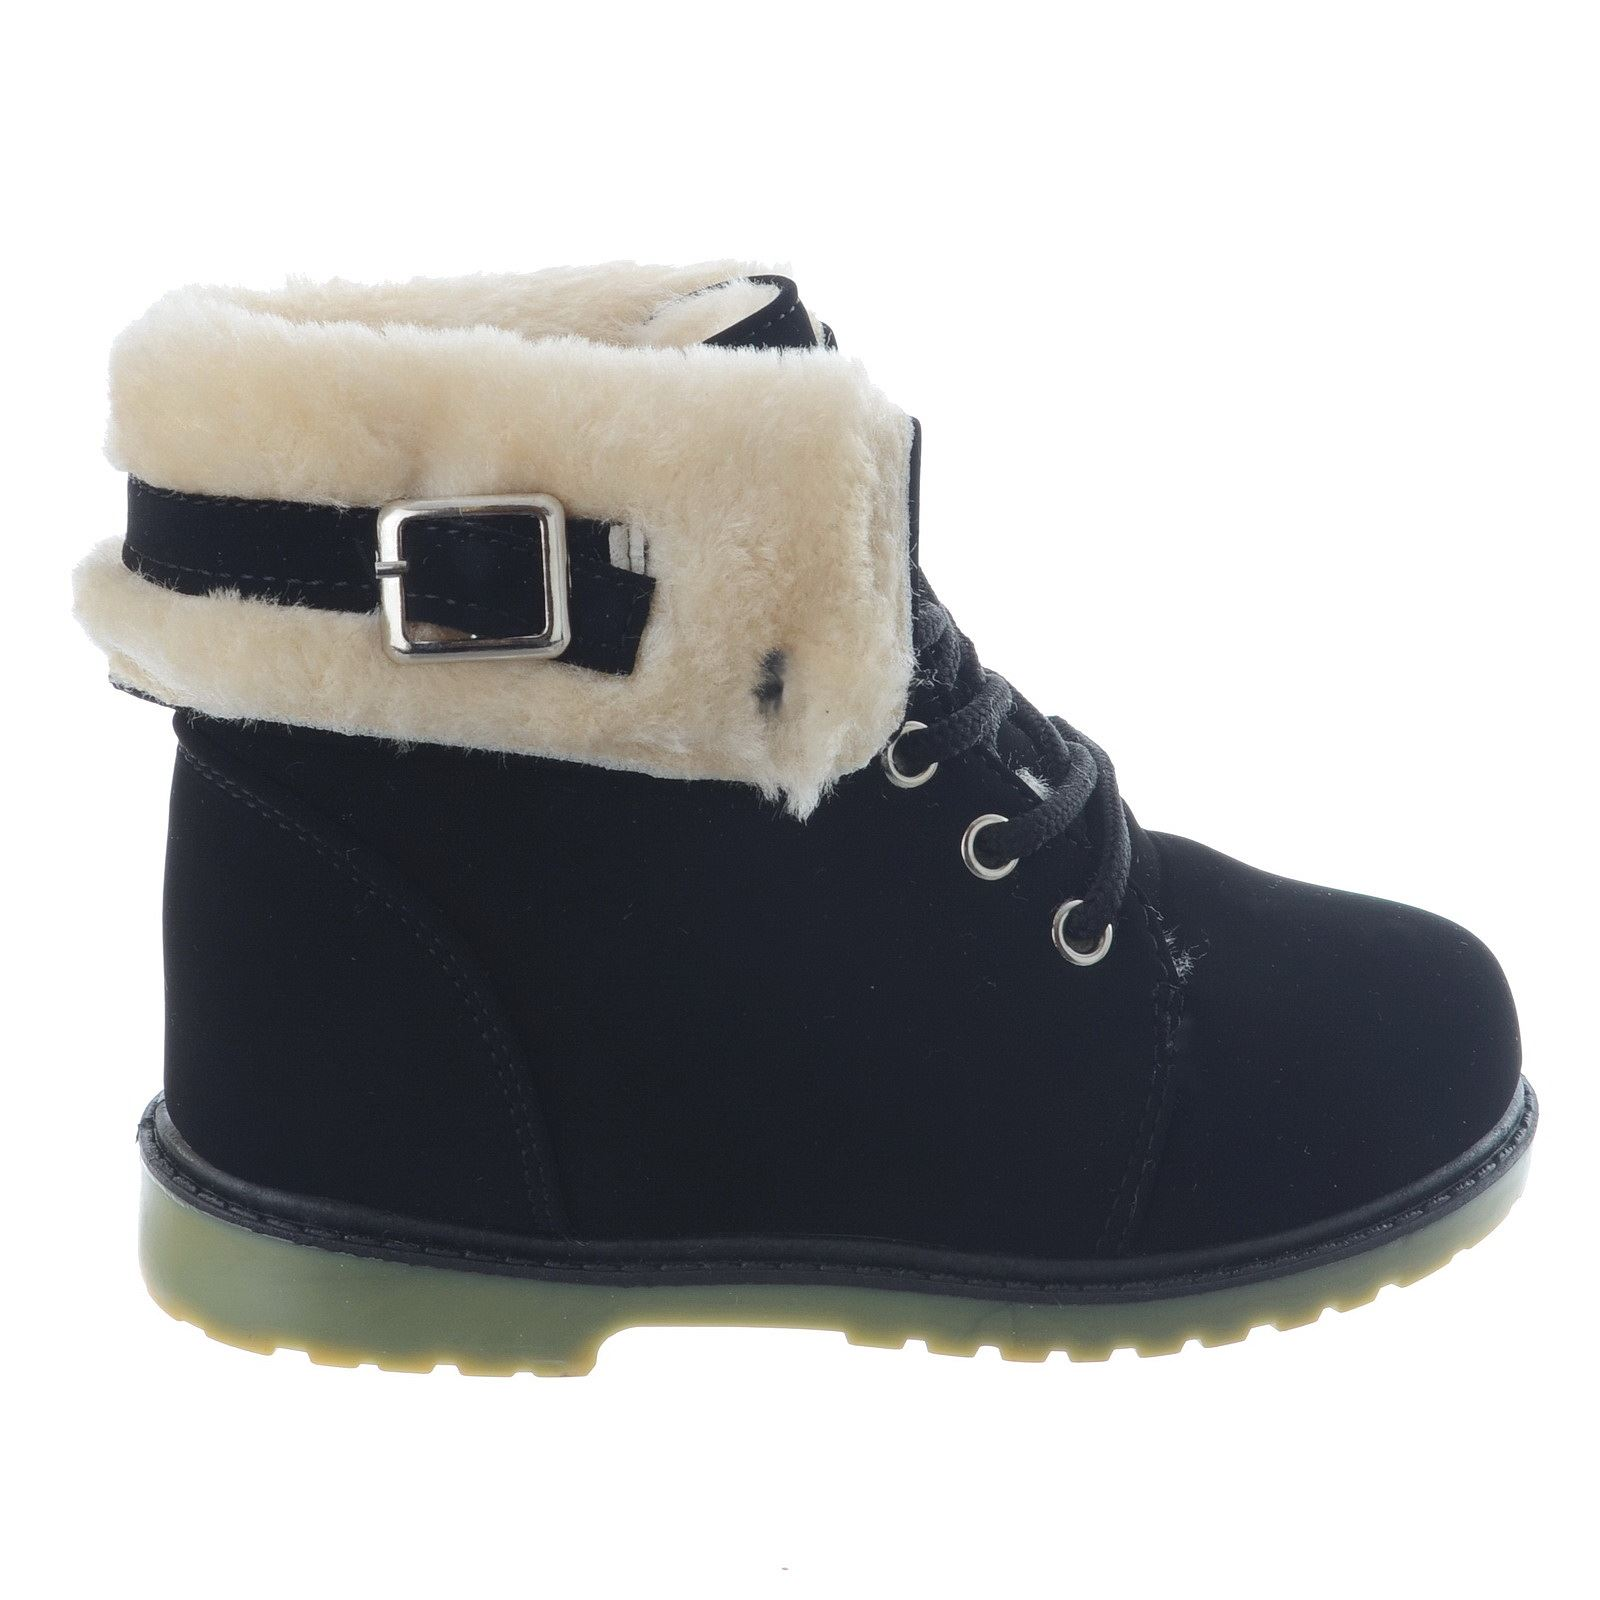 GIRLS KIDS BOYS INFANTS COMFY GRIP SOLE WARM WINTER SNOW ANKLE BOOTS SHOES SIZE